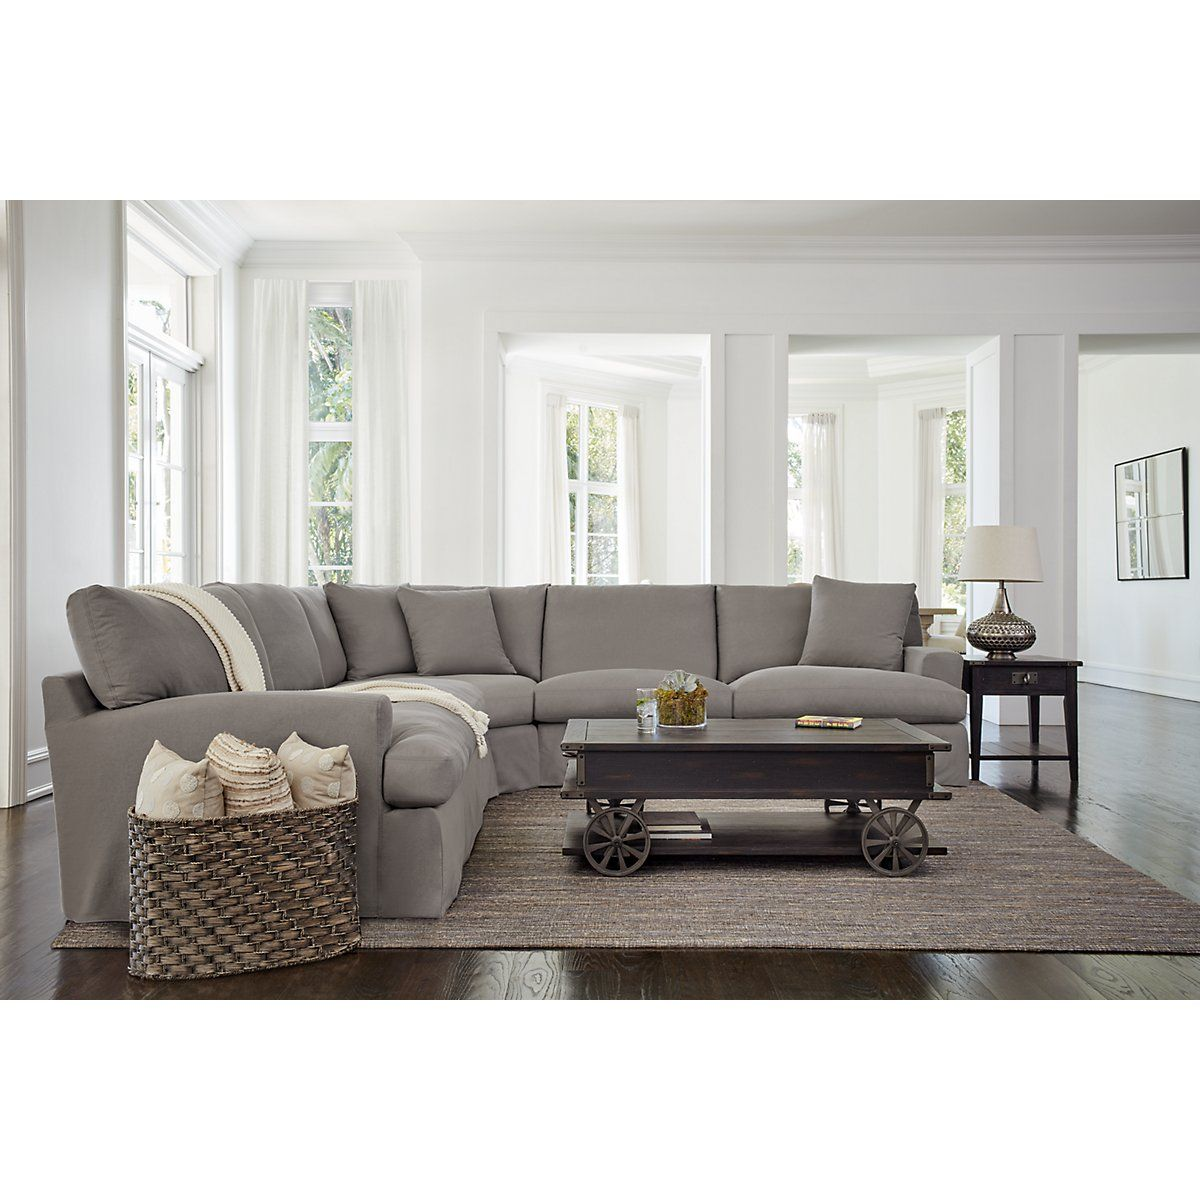 Includes two chairs two armless chairs wedge and pillows as pictured bring relaxed modern style to your home with the delilah large two arm